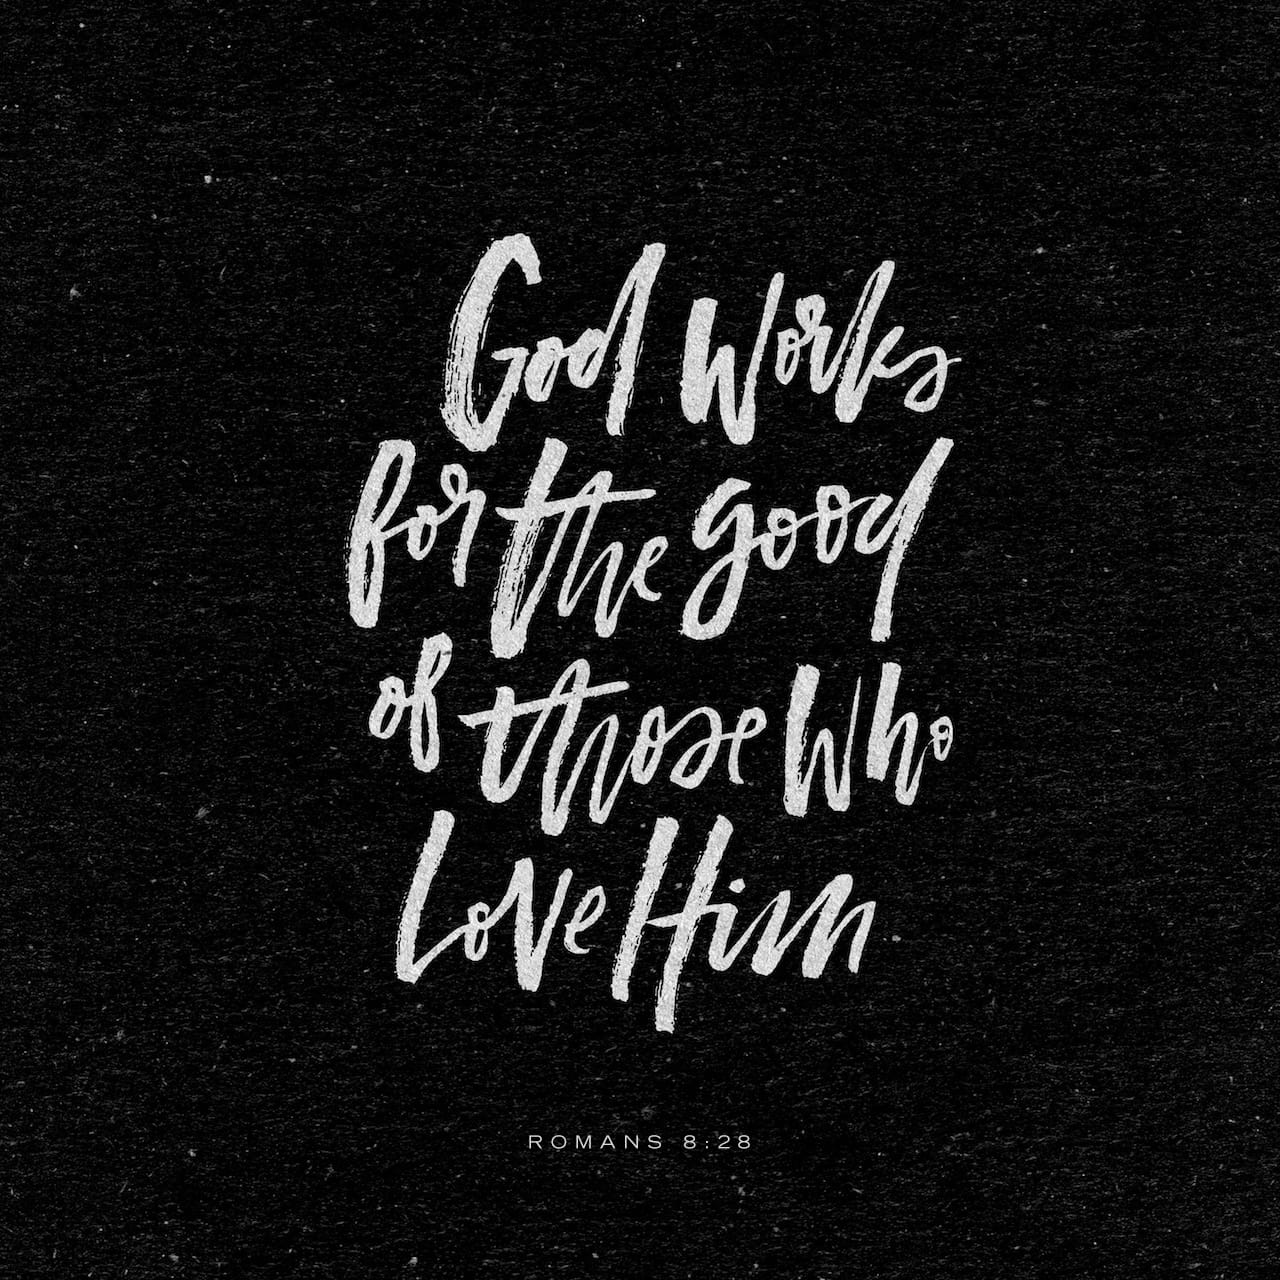 Romans 8:28 And we know that all things work together for good to them that love God, to them who are the called according to his purpose. | King James Version (KJV)